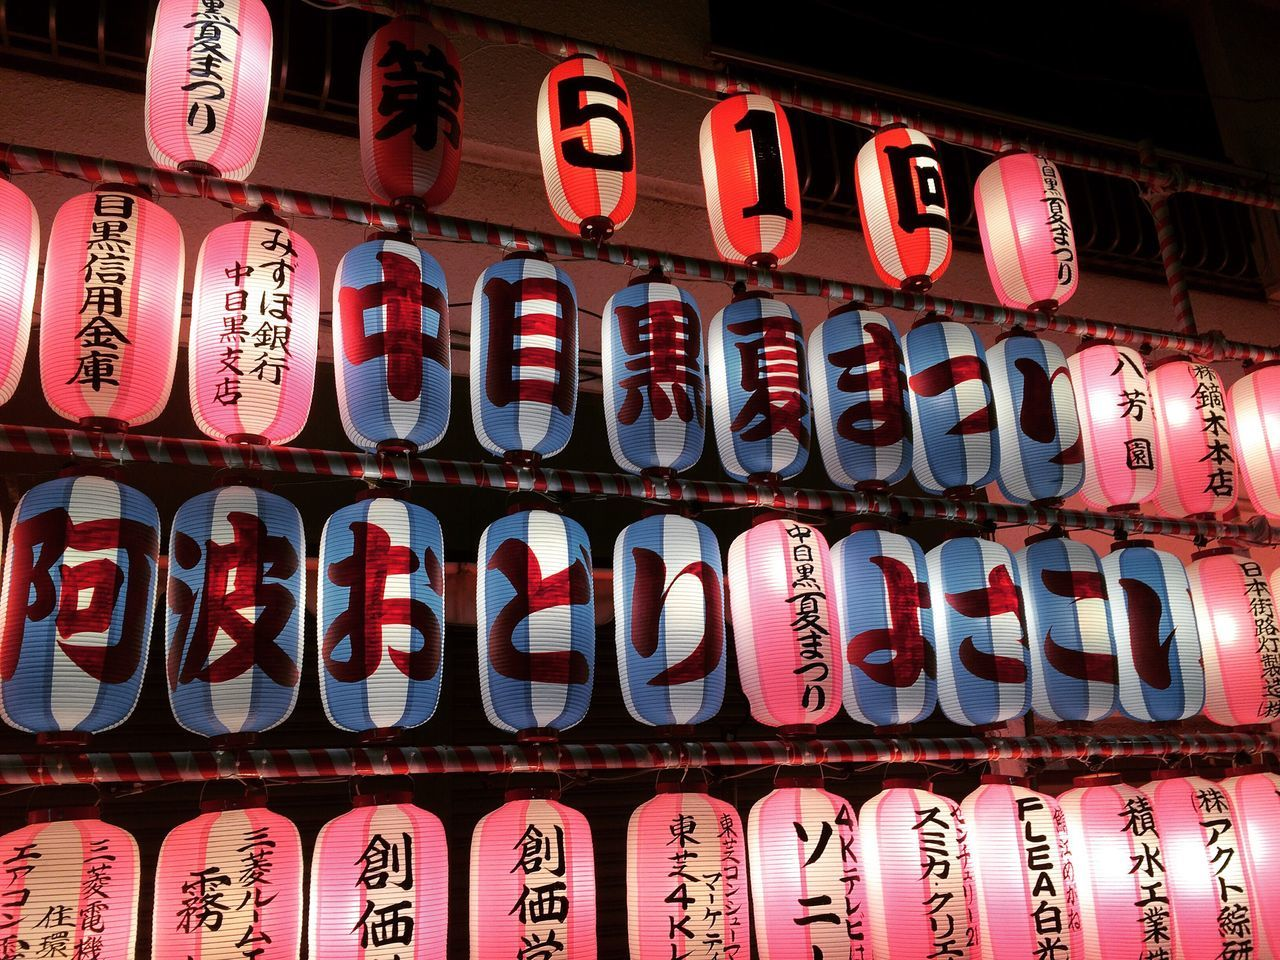 Summer festival Japan Tokyo Summer Festival Lantern Calligraphy Japanese  Tradition Heritage Hot Day